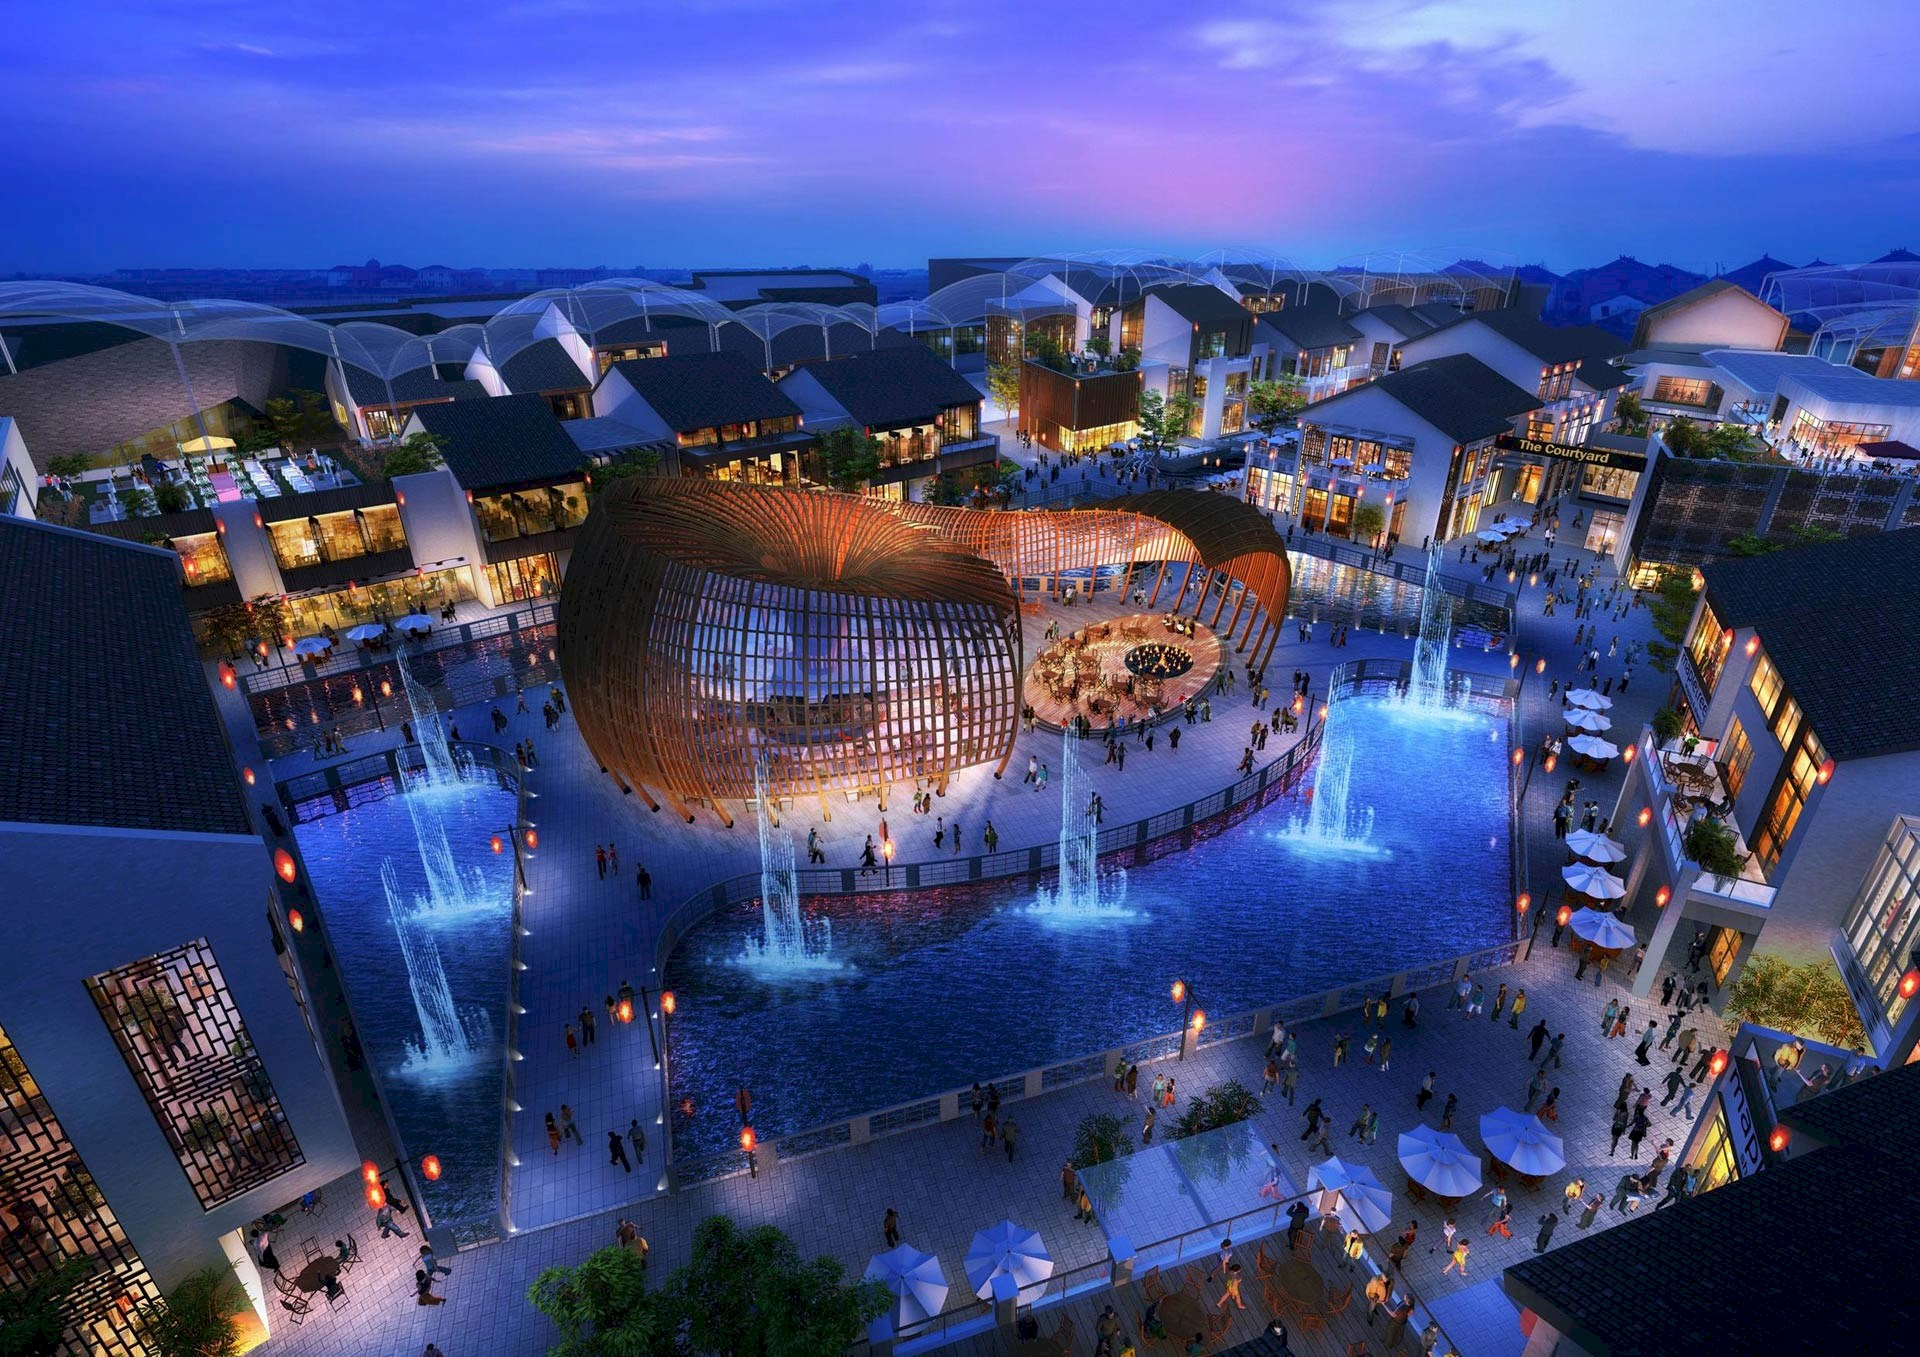 Benoy Appointed for Taihu New City and Wuxi Lan Kwai Fong Developments